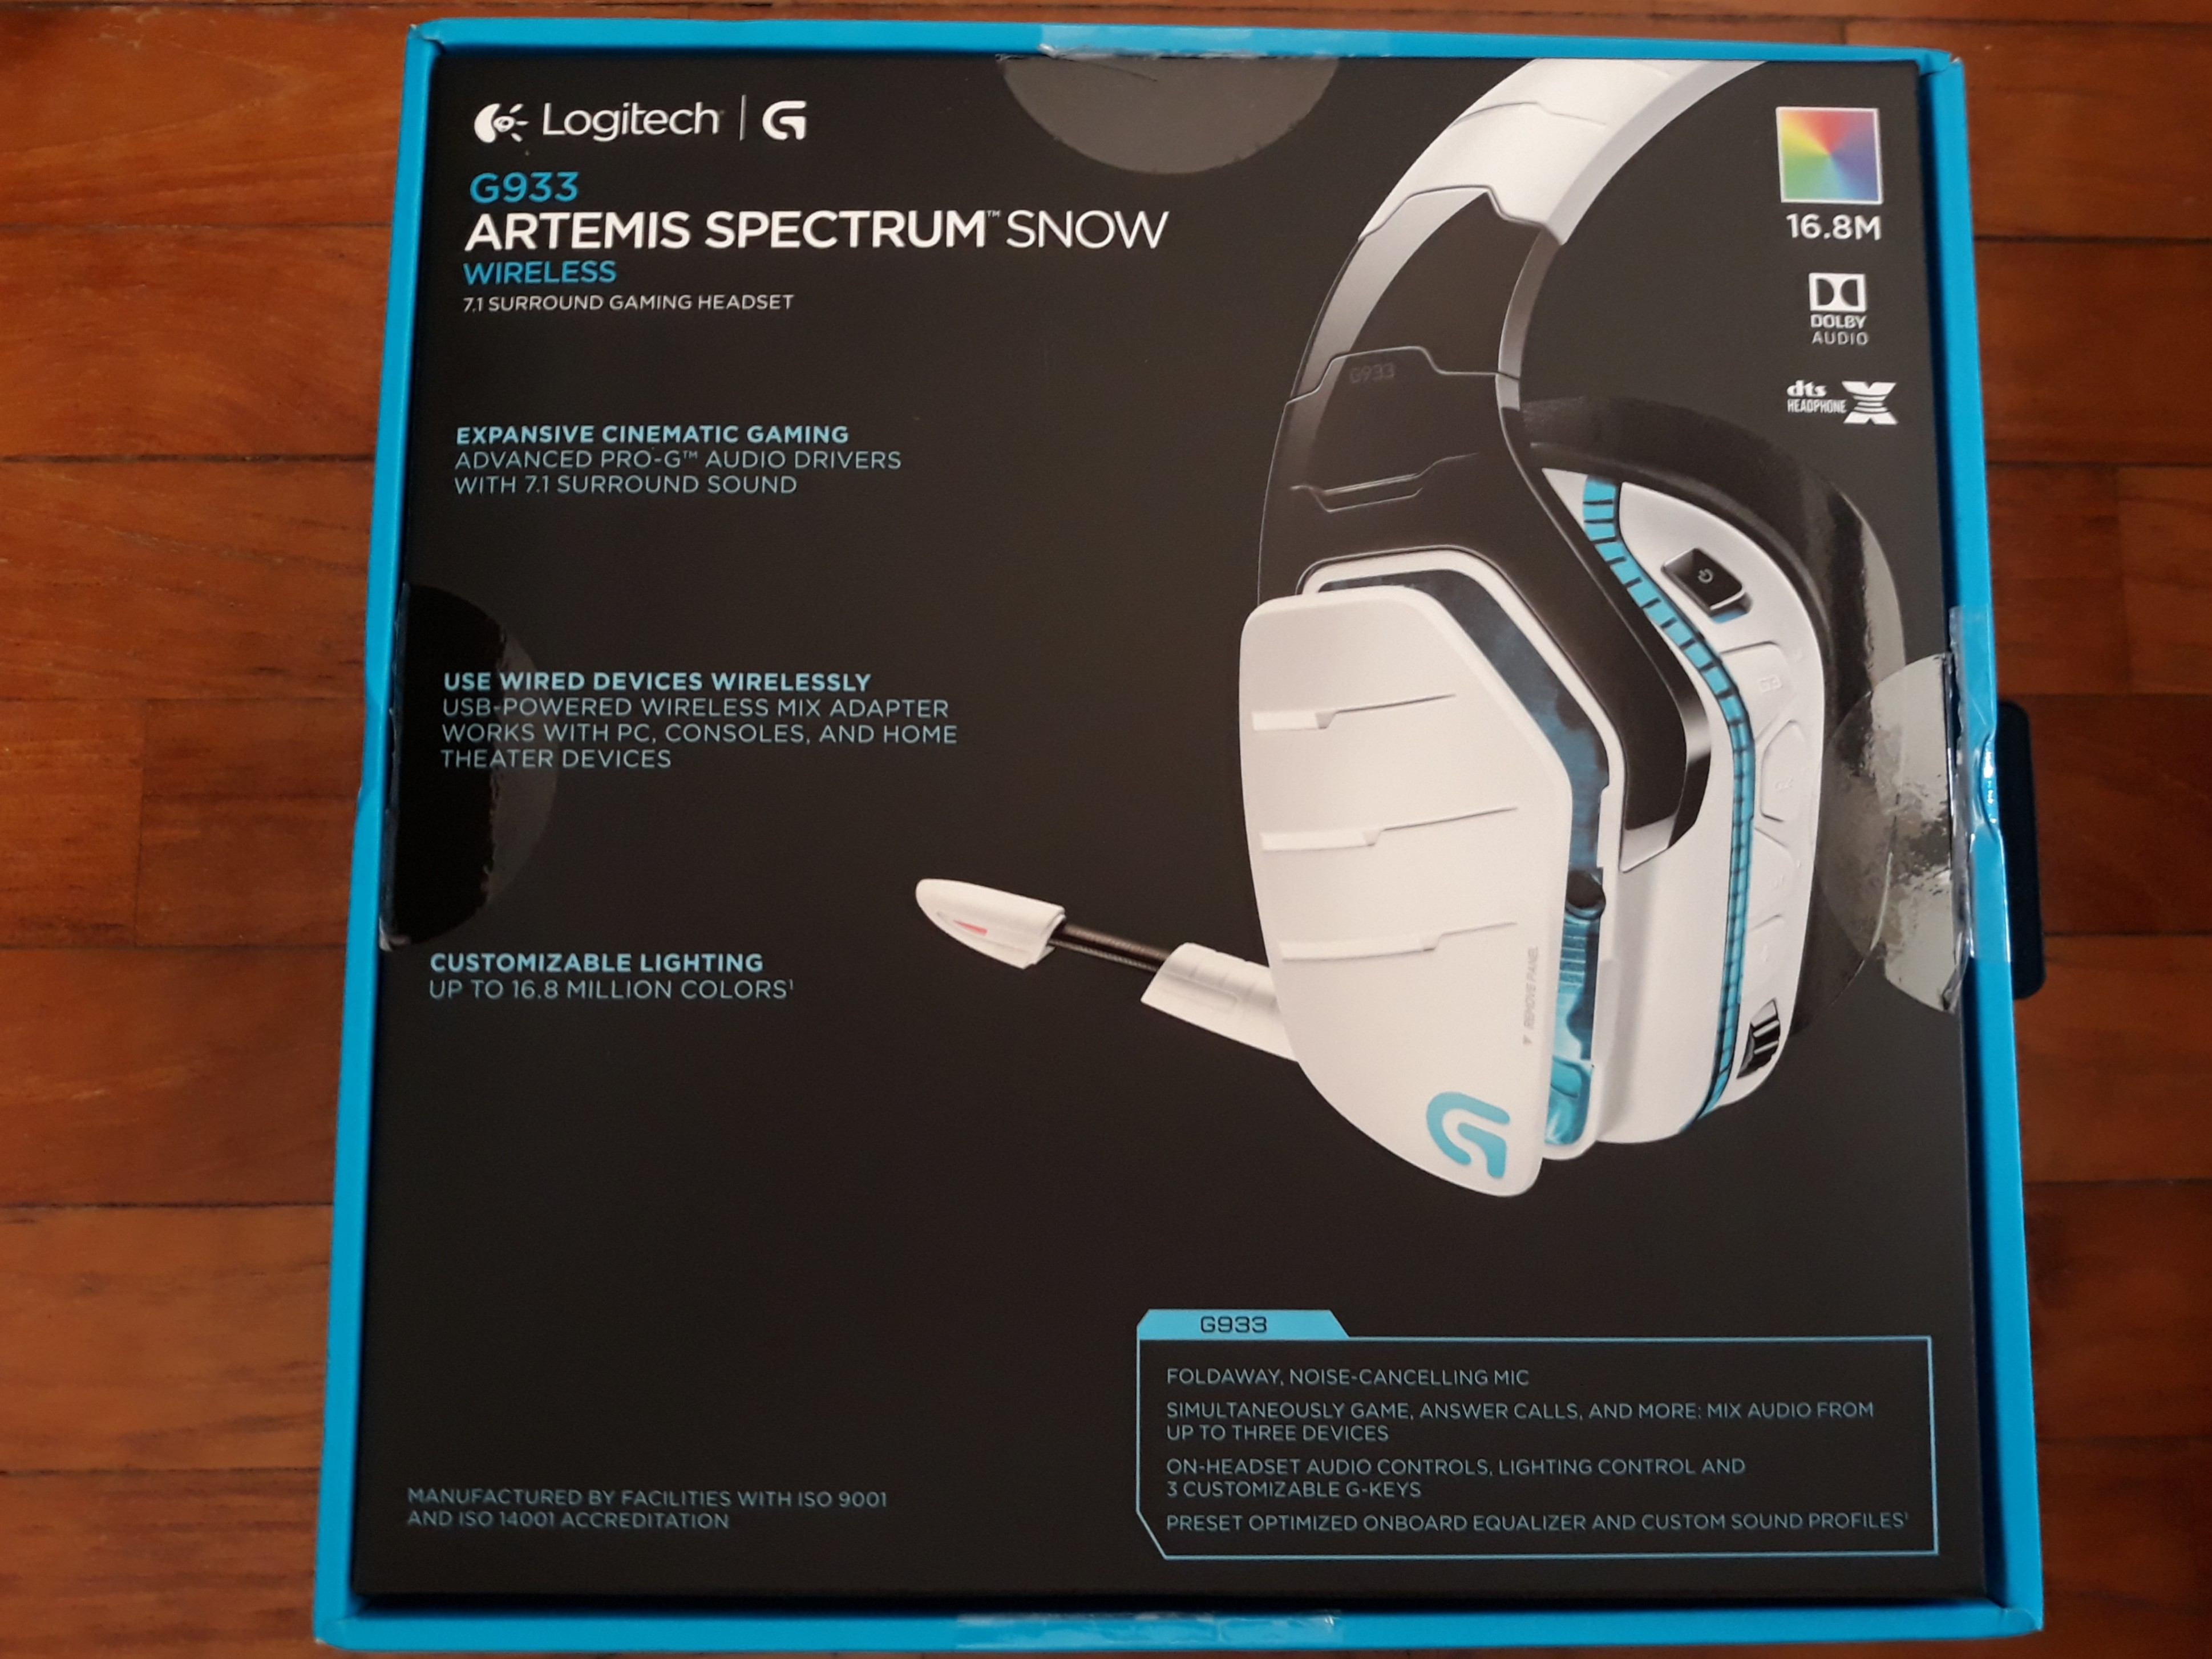 Gaming Headset Logitech G933 Artemis